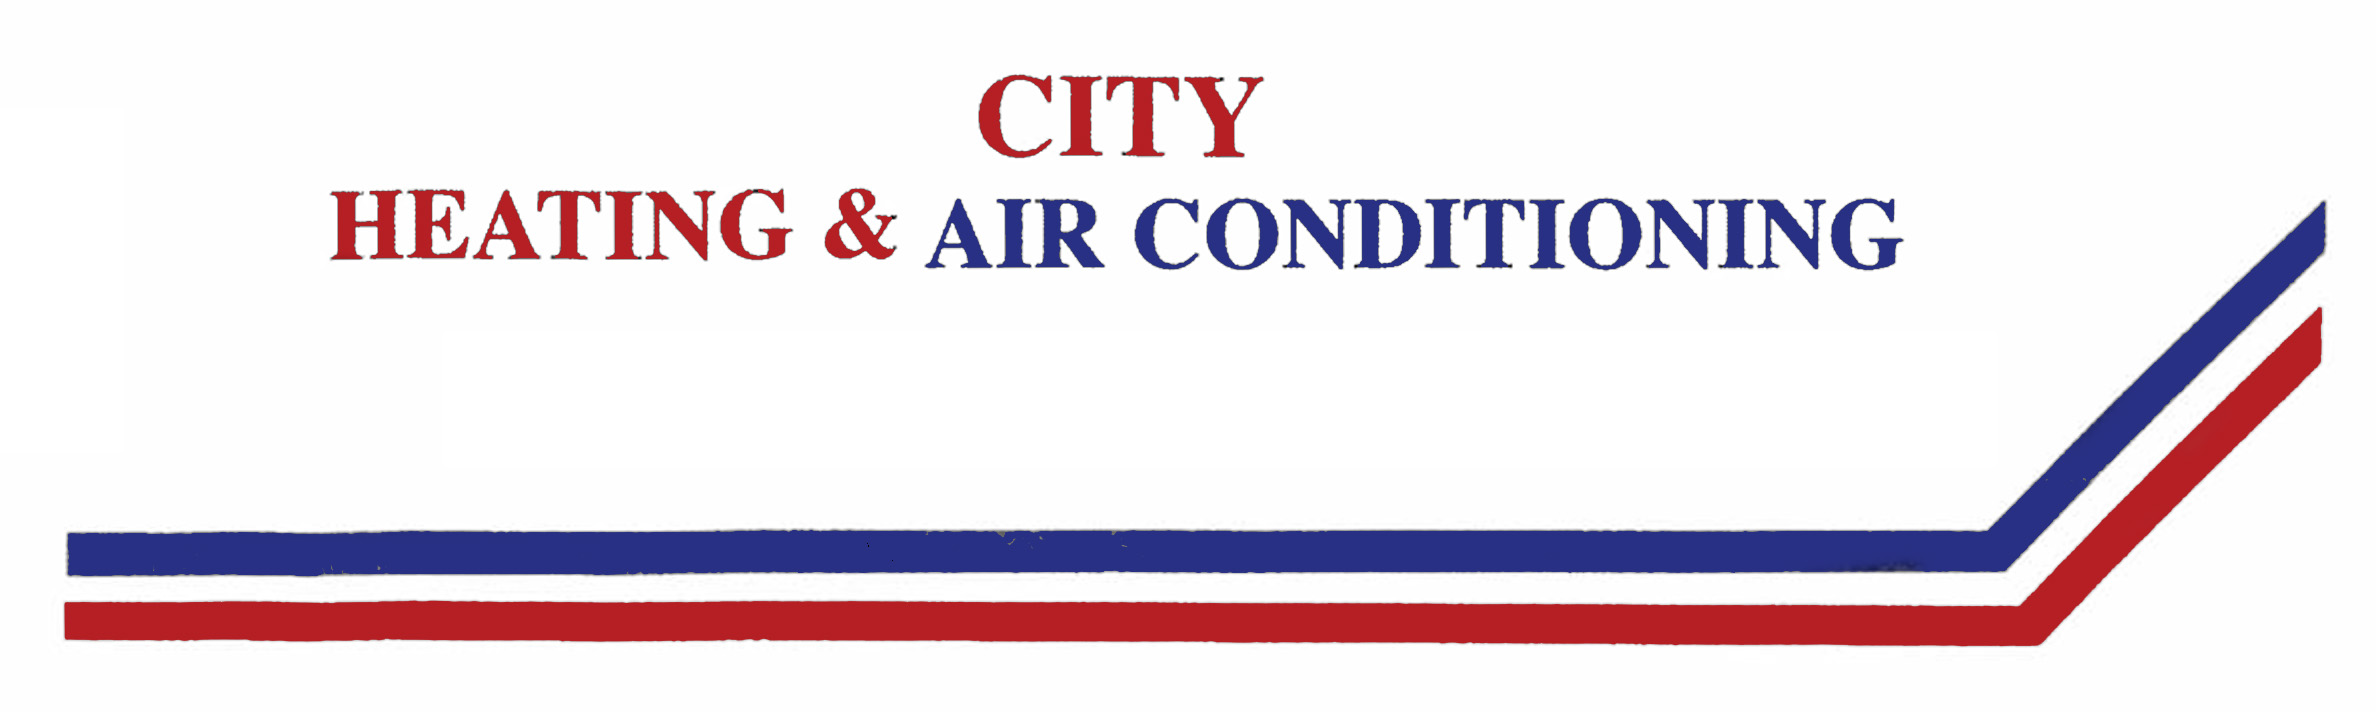 City Heating Air Conditioning